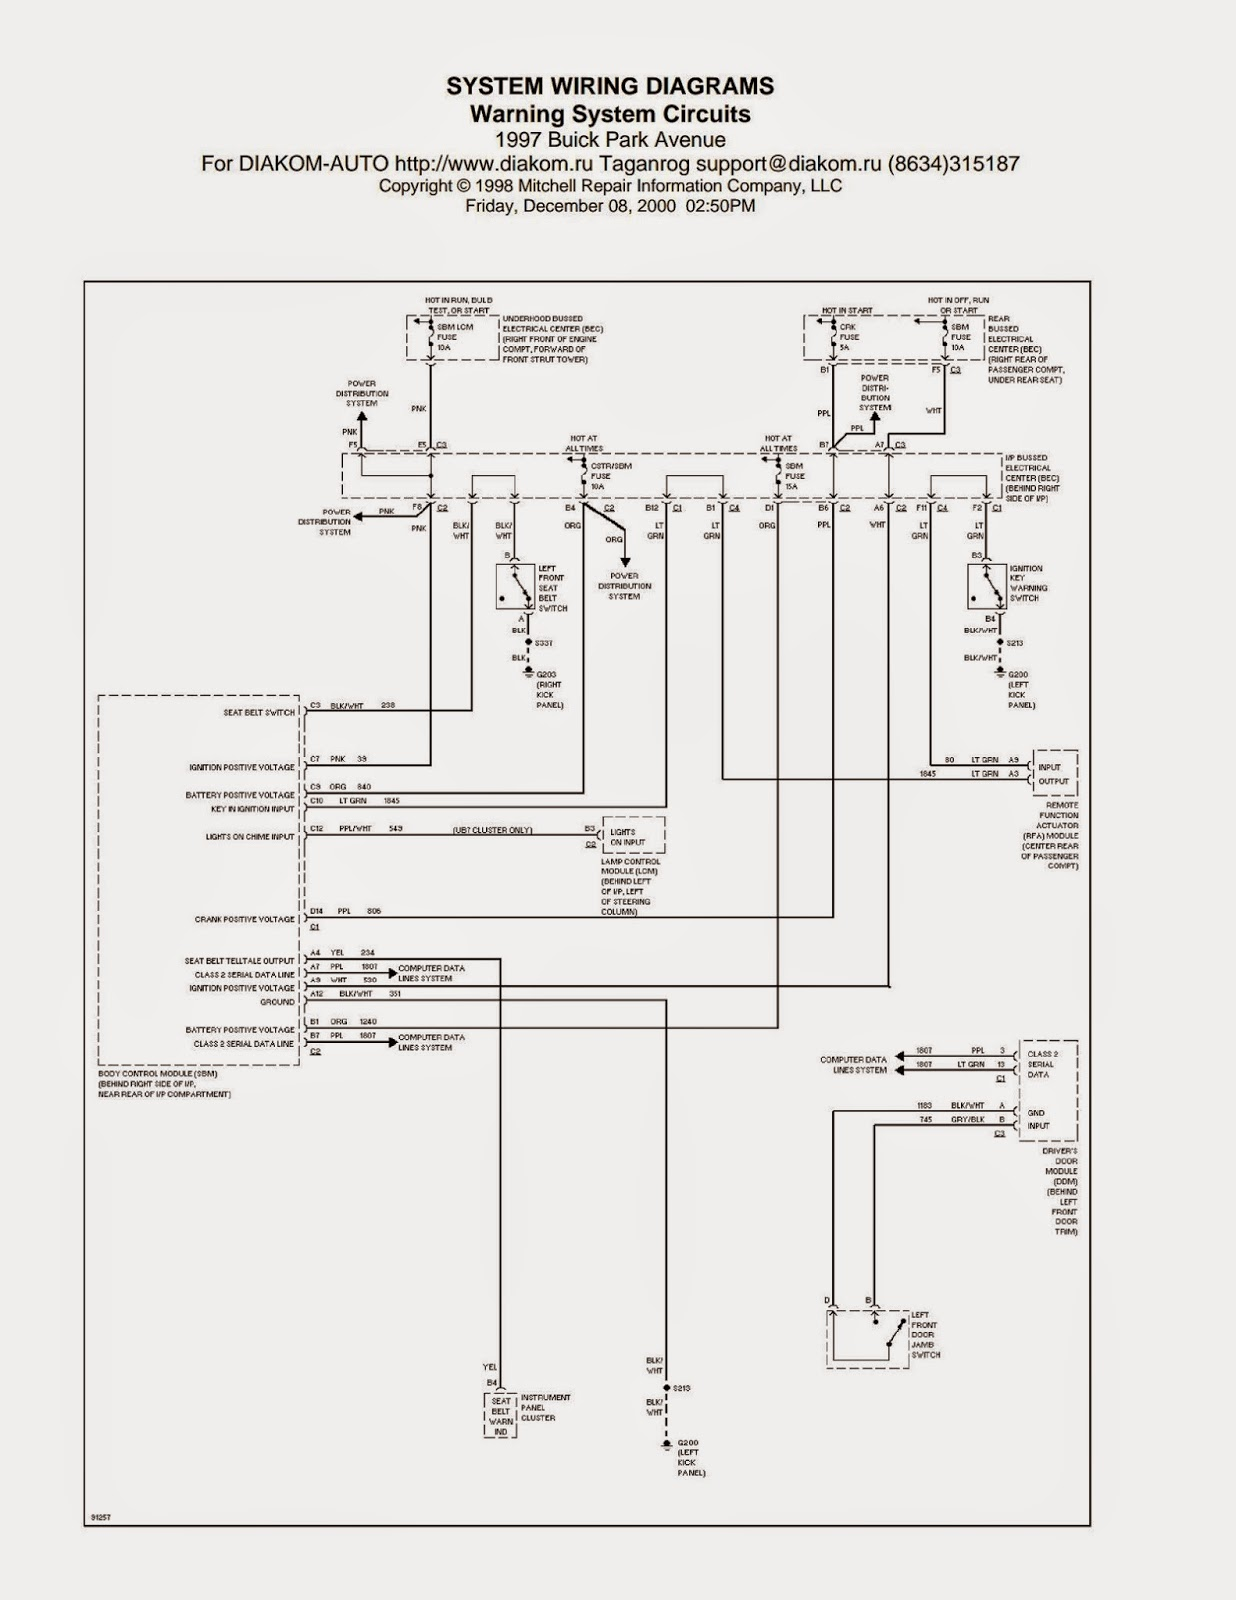 1993 buick park avenue fuse box diagram wiring librarywiring diagrams and free manual ebooks 1997 buick [ 1236 x 1600 Pixel ]